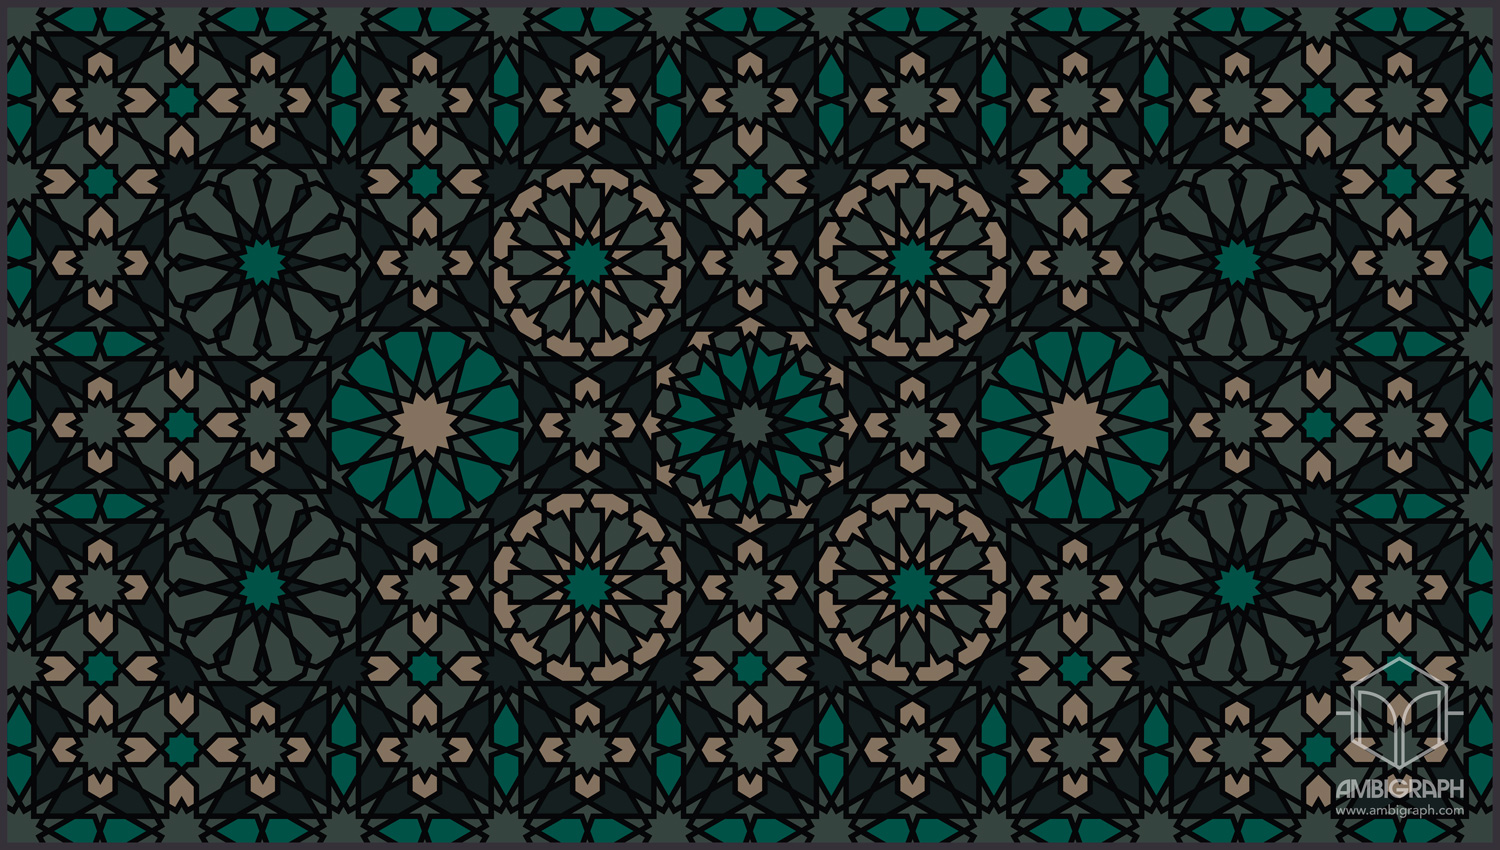 alhambra-twelves-combo-panel-by-ambigraph